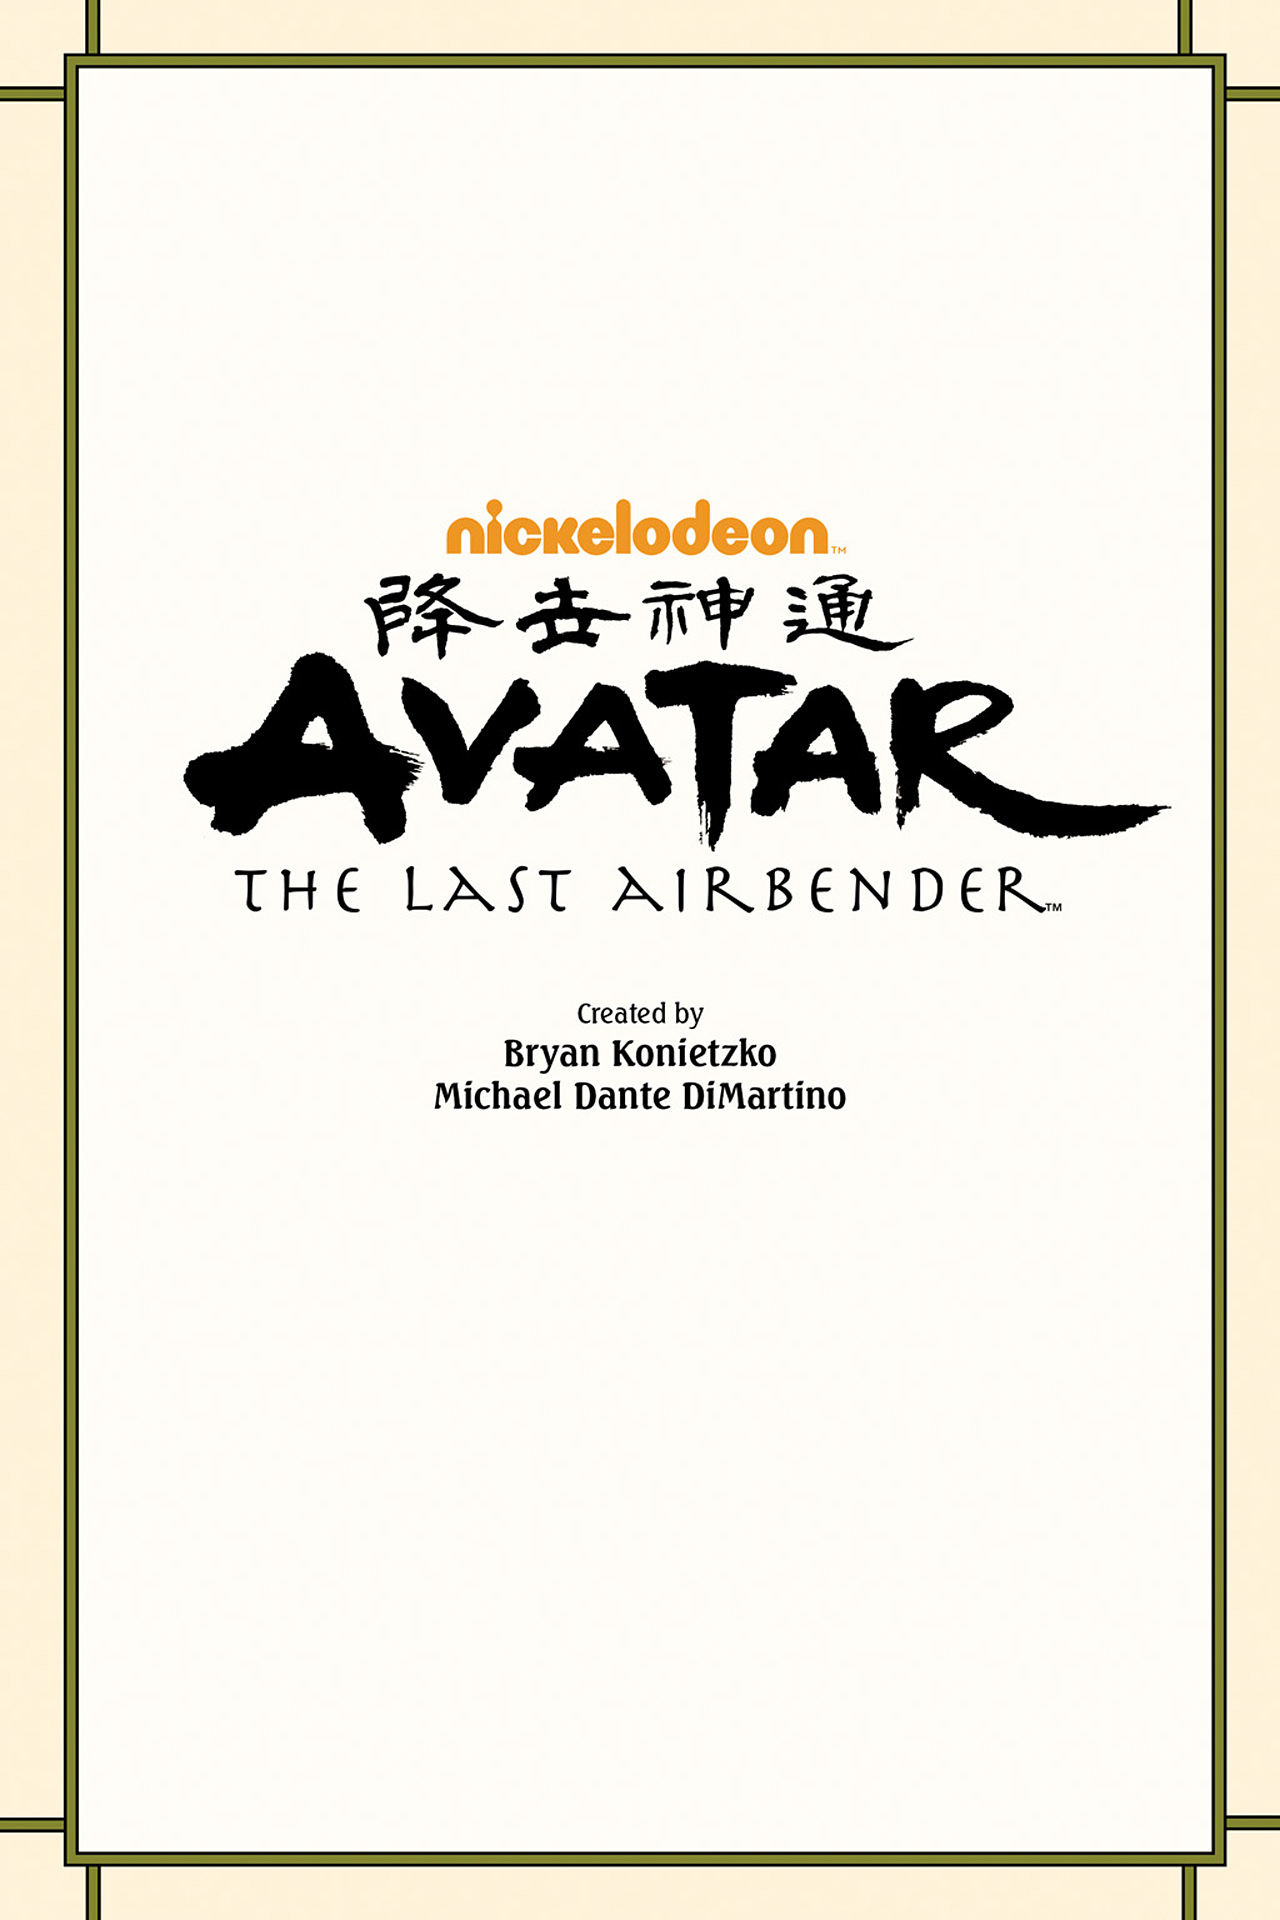 Read online Nickelodeon Avatar: The Last Airbender - The Search comic -  Issue # Part 1 - 2